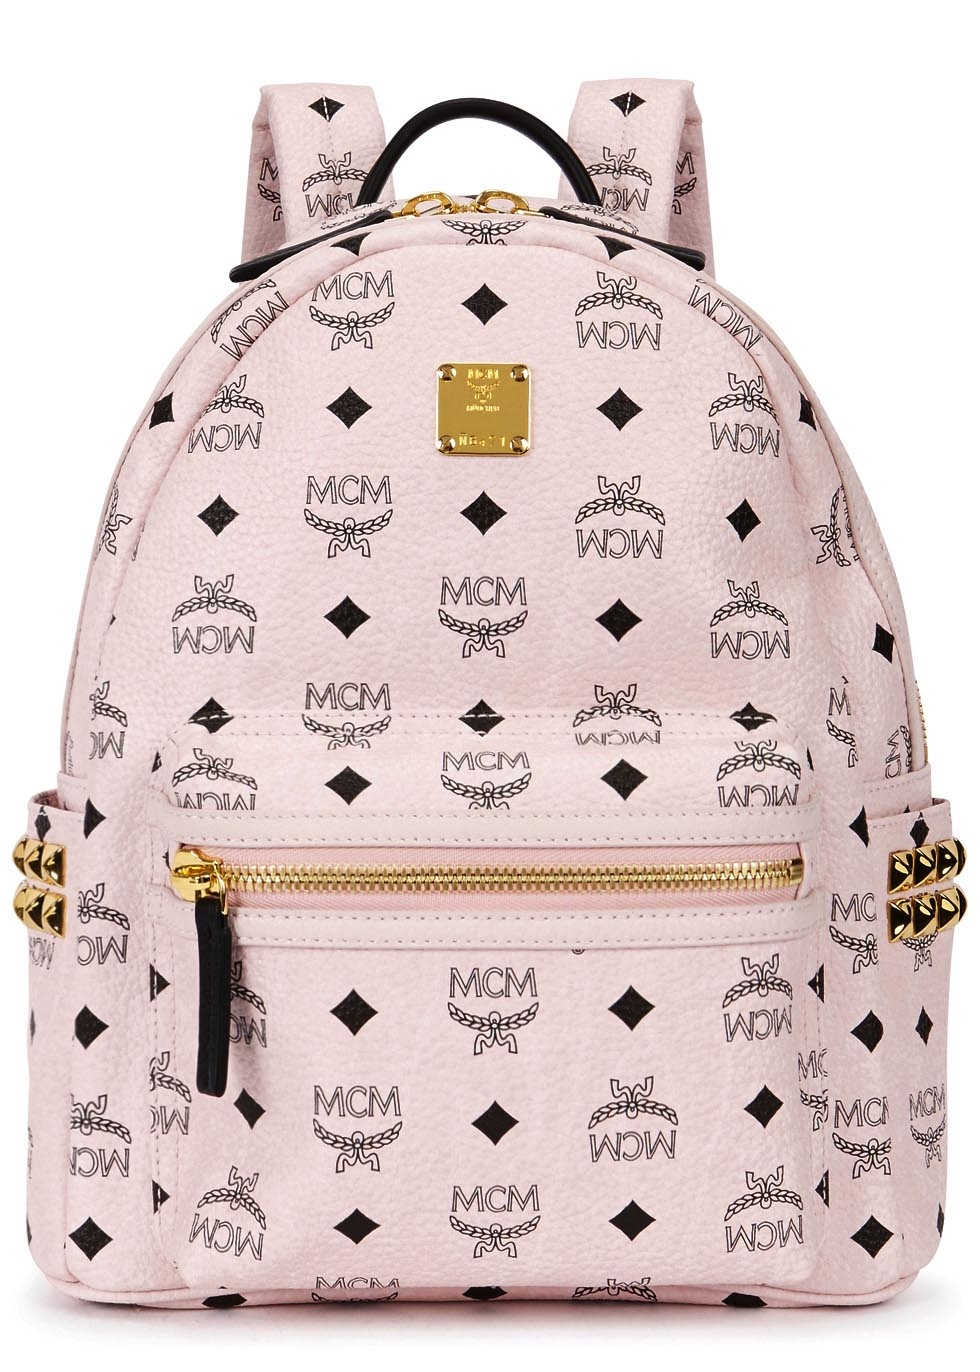 MCM small leather backpack, £450